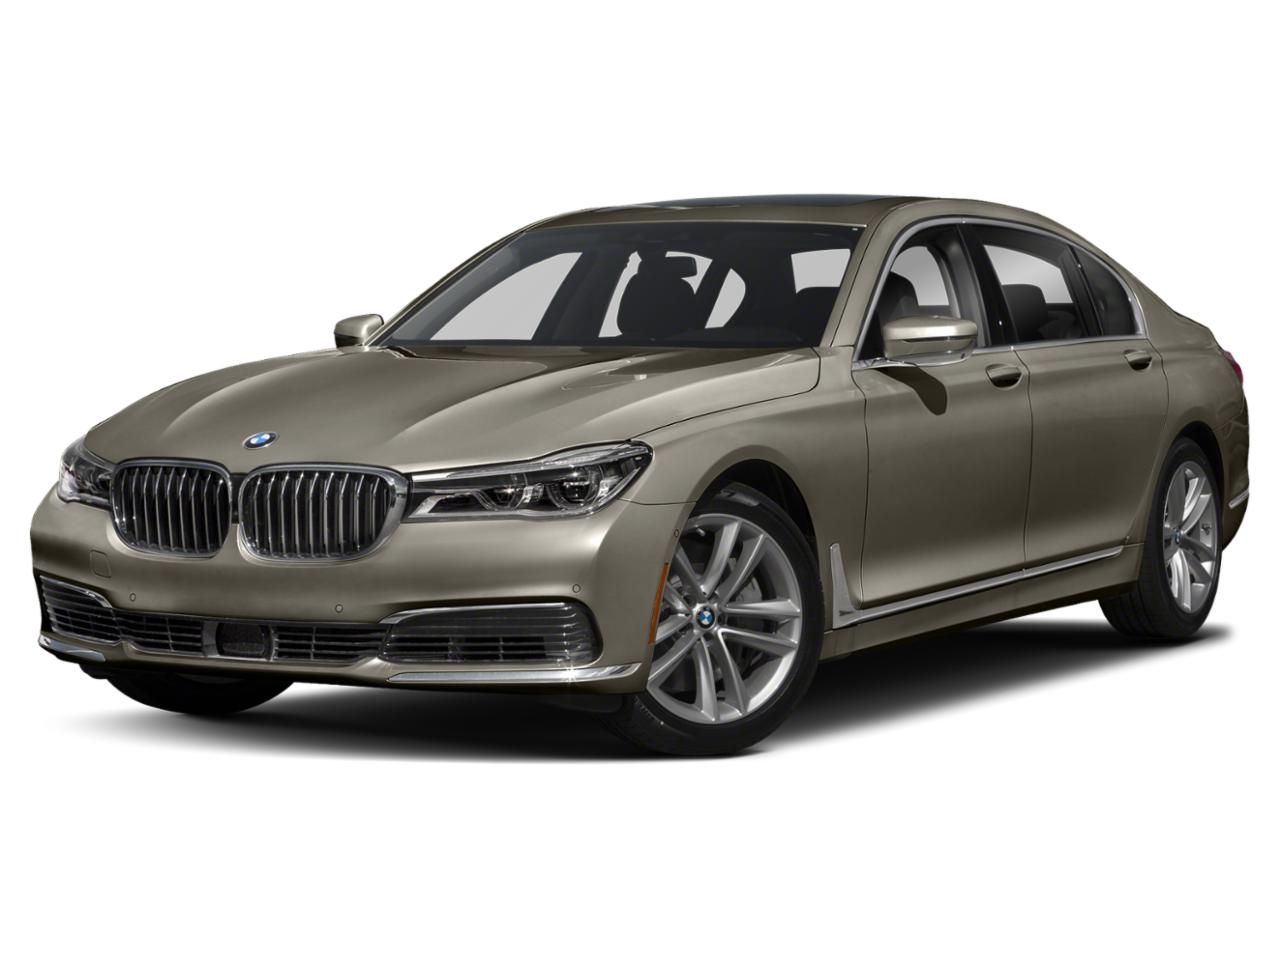 2019 BMW 750i xDrive Vehicle Photo in Charleston, SC 29407